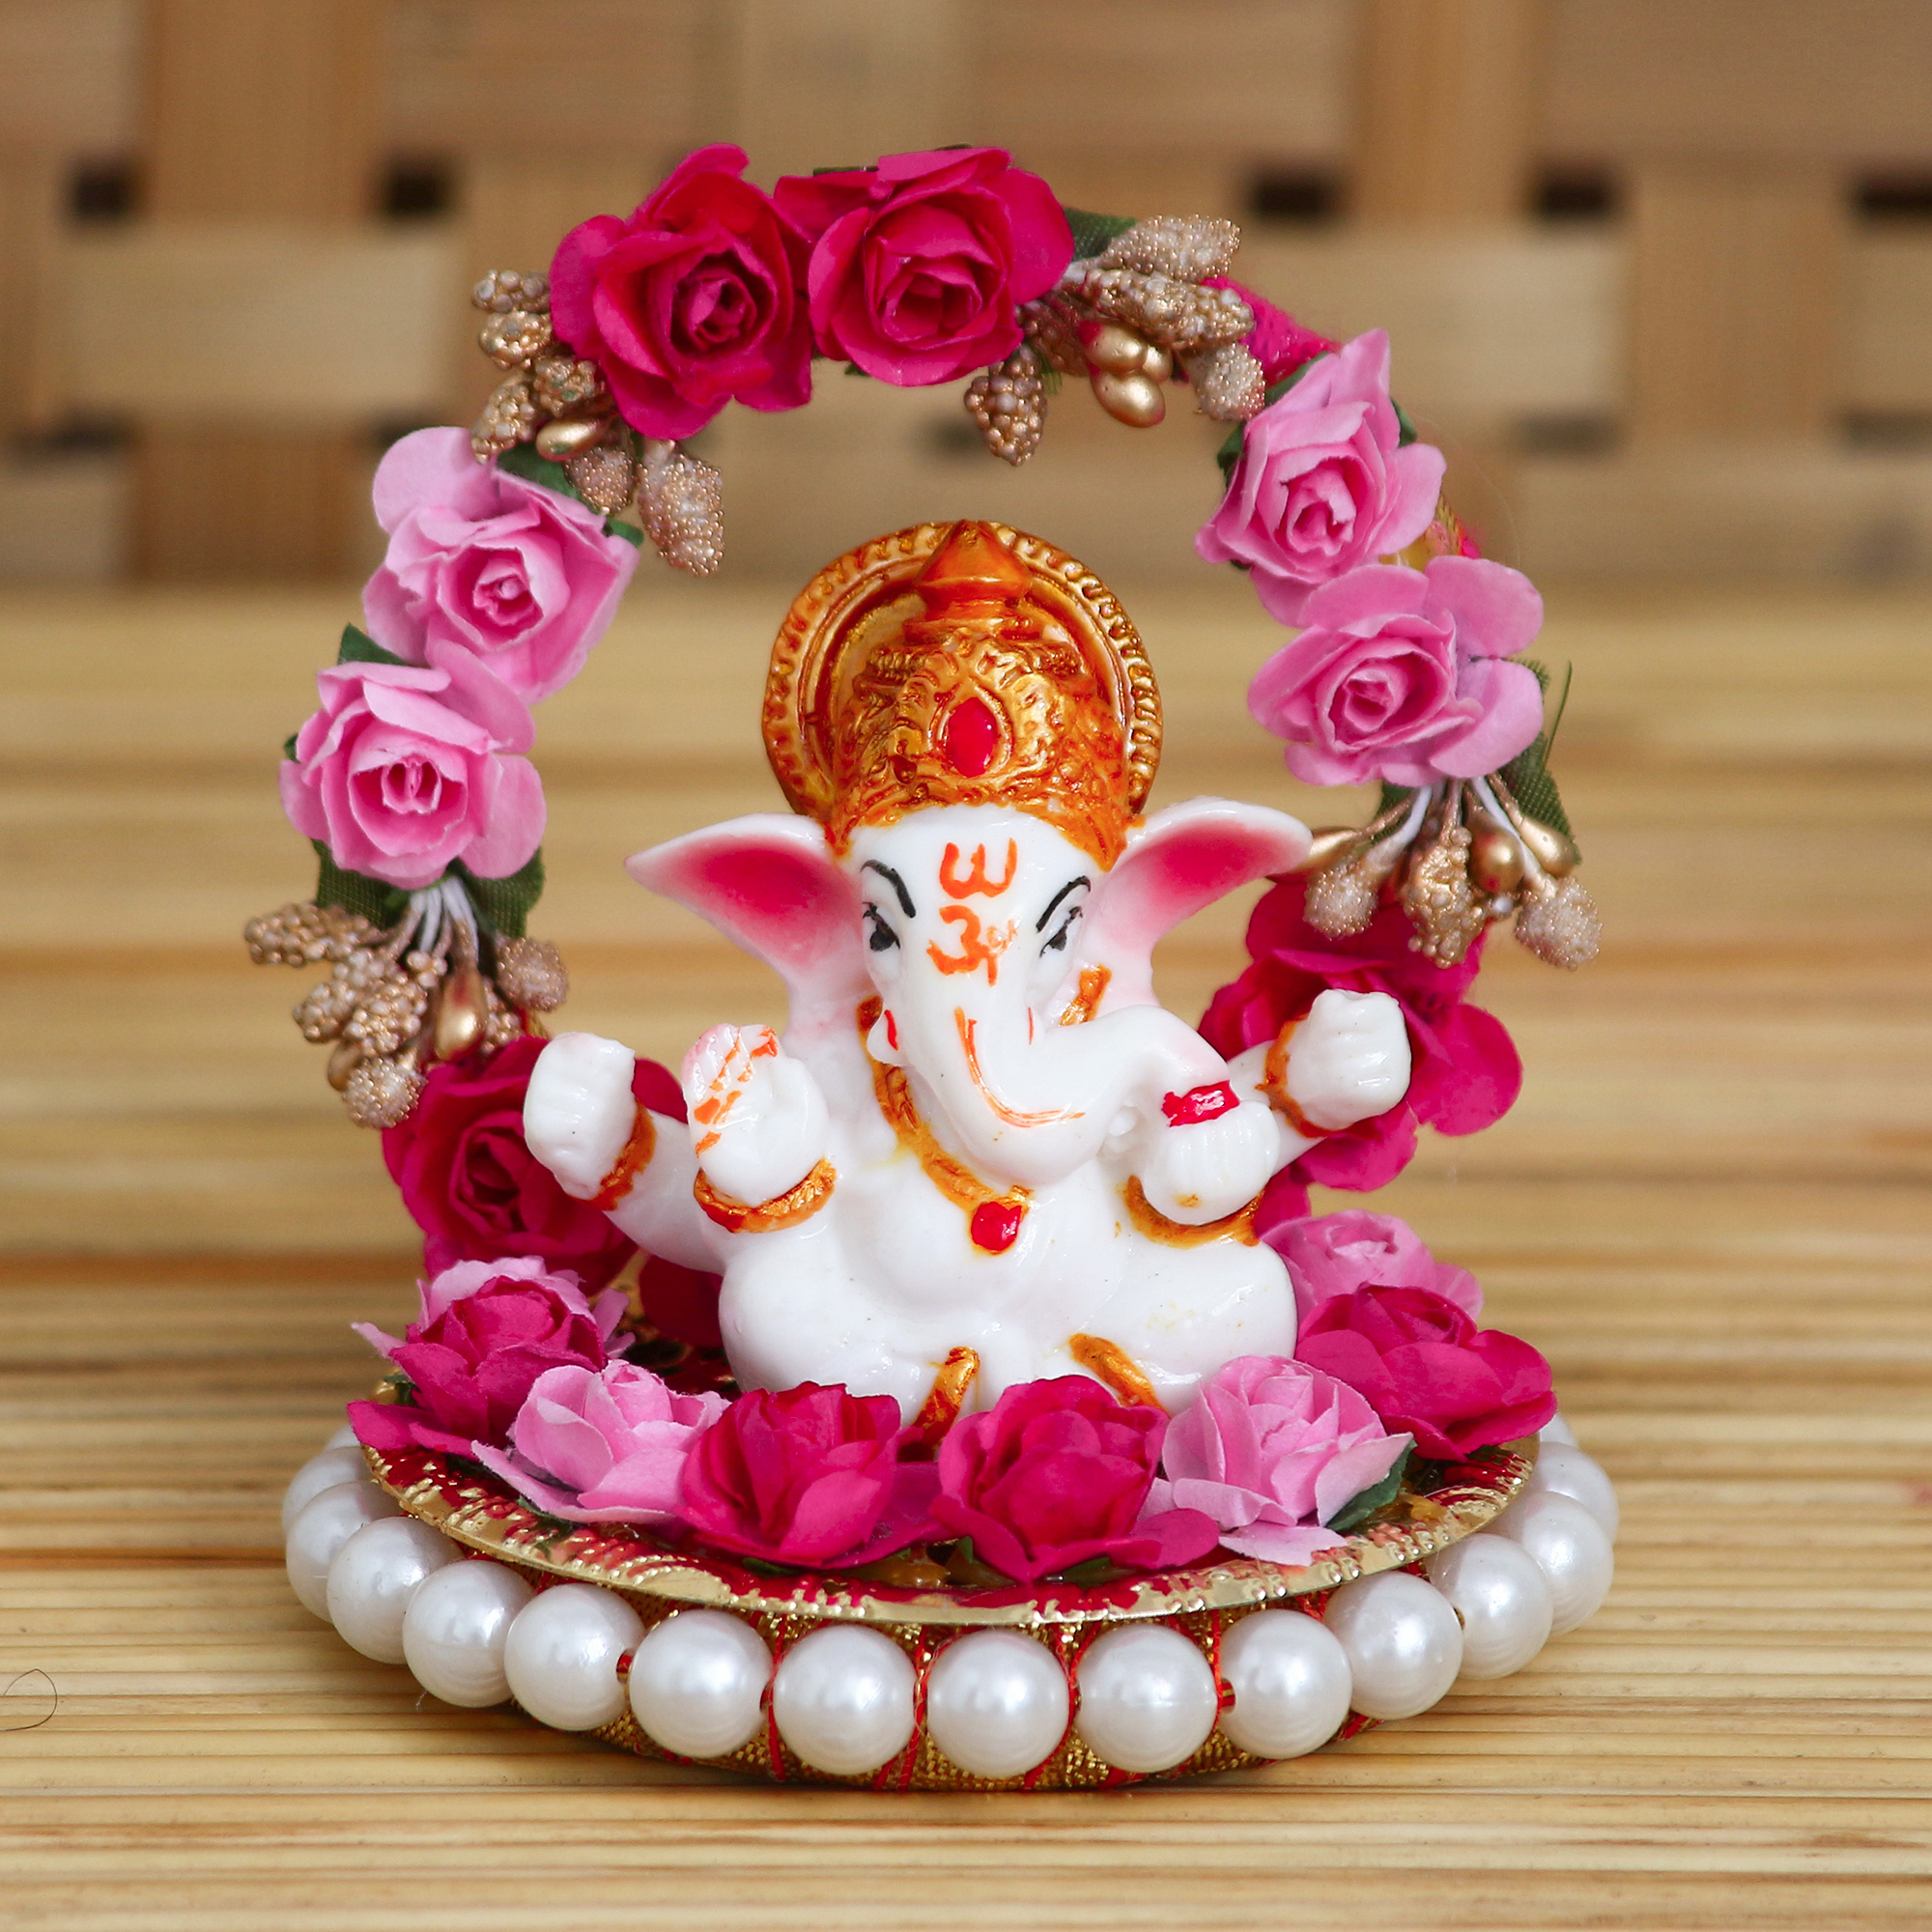 Lord Ganesha Idol on Decorative Handcrafted Plate with Throne of Pink and Red Flowers Indian Home Decor